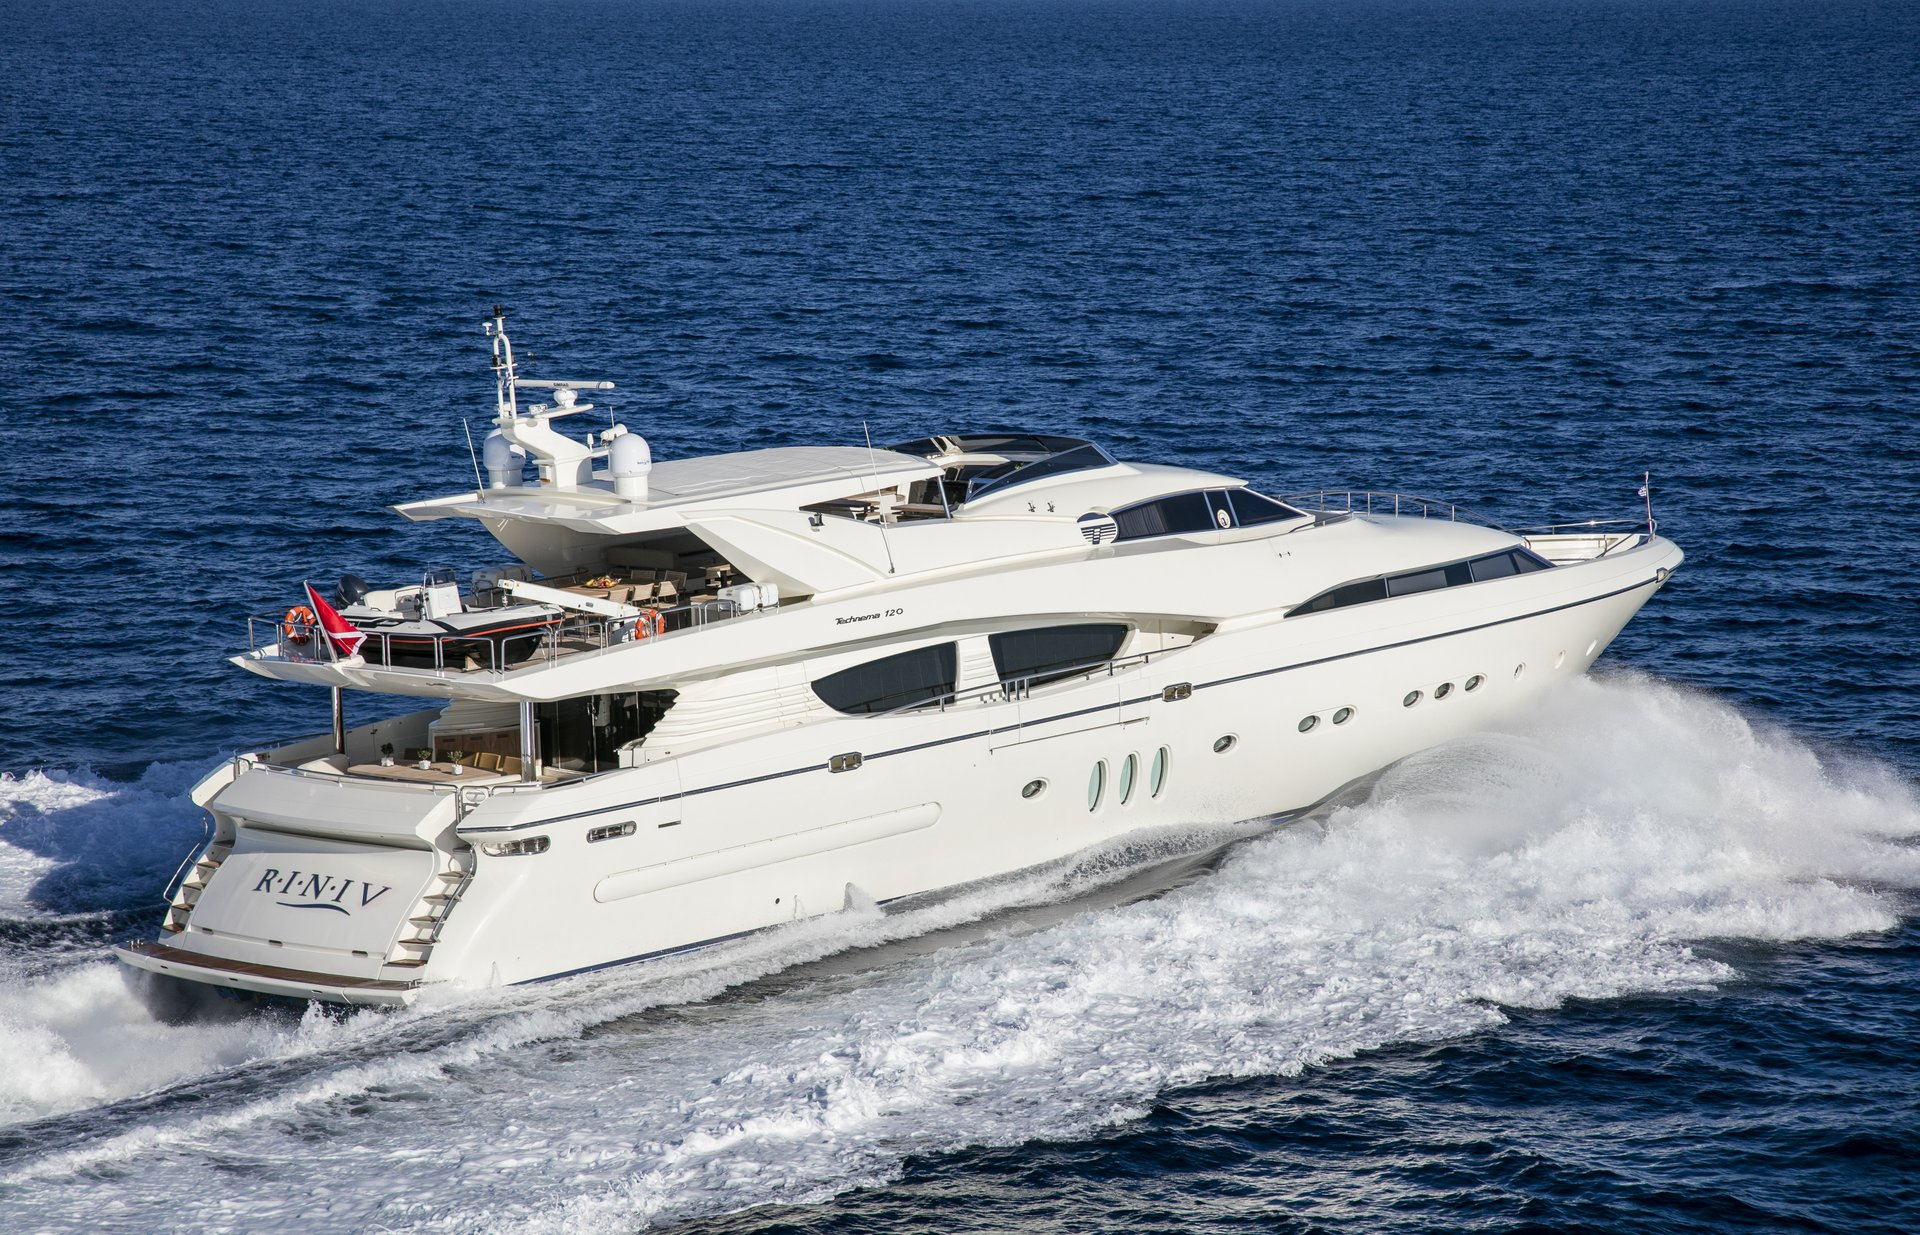 M/Y RINI V yacht for charter sailing